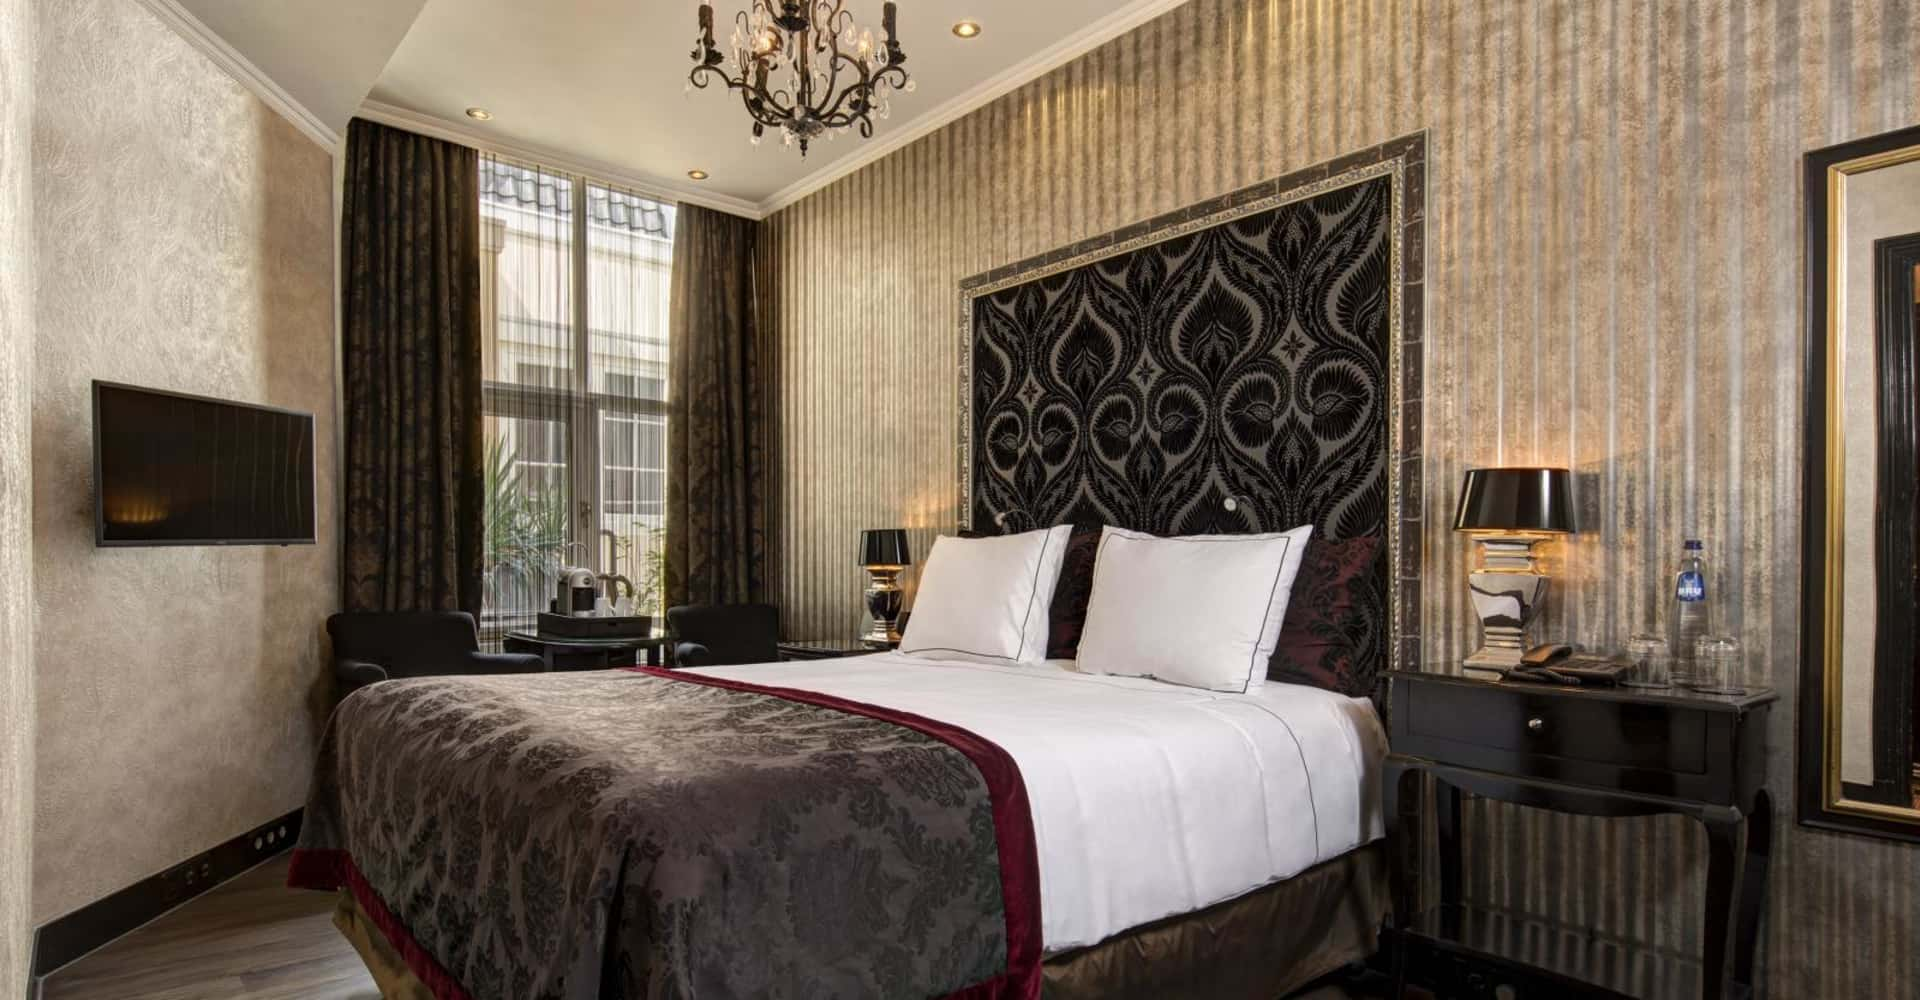 Rooms & Suites - The Toren Amsterdam - By the Pavilions